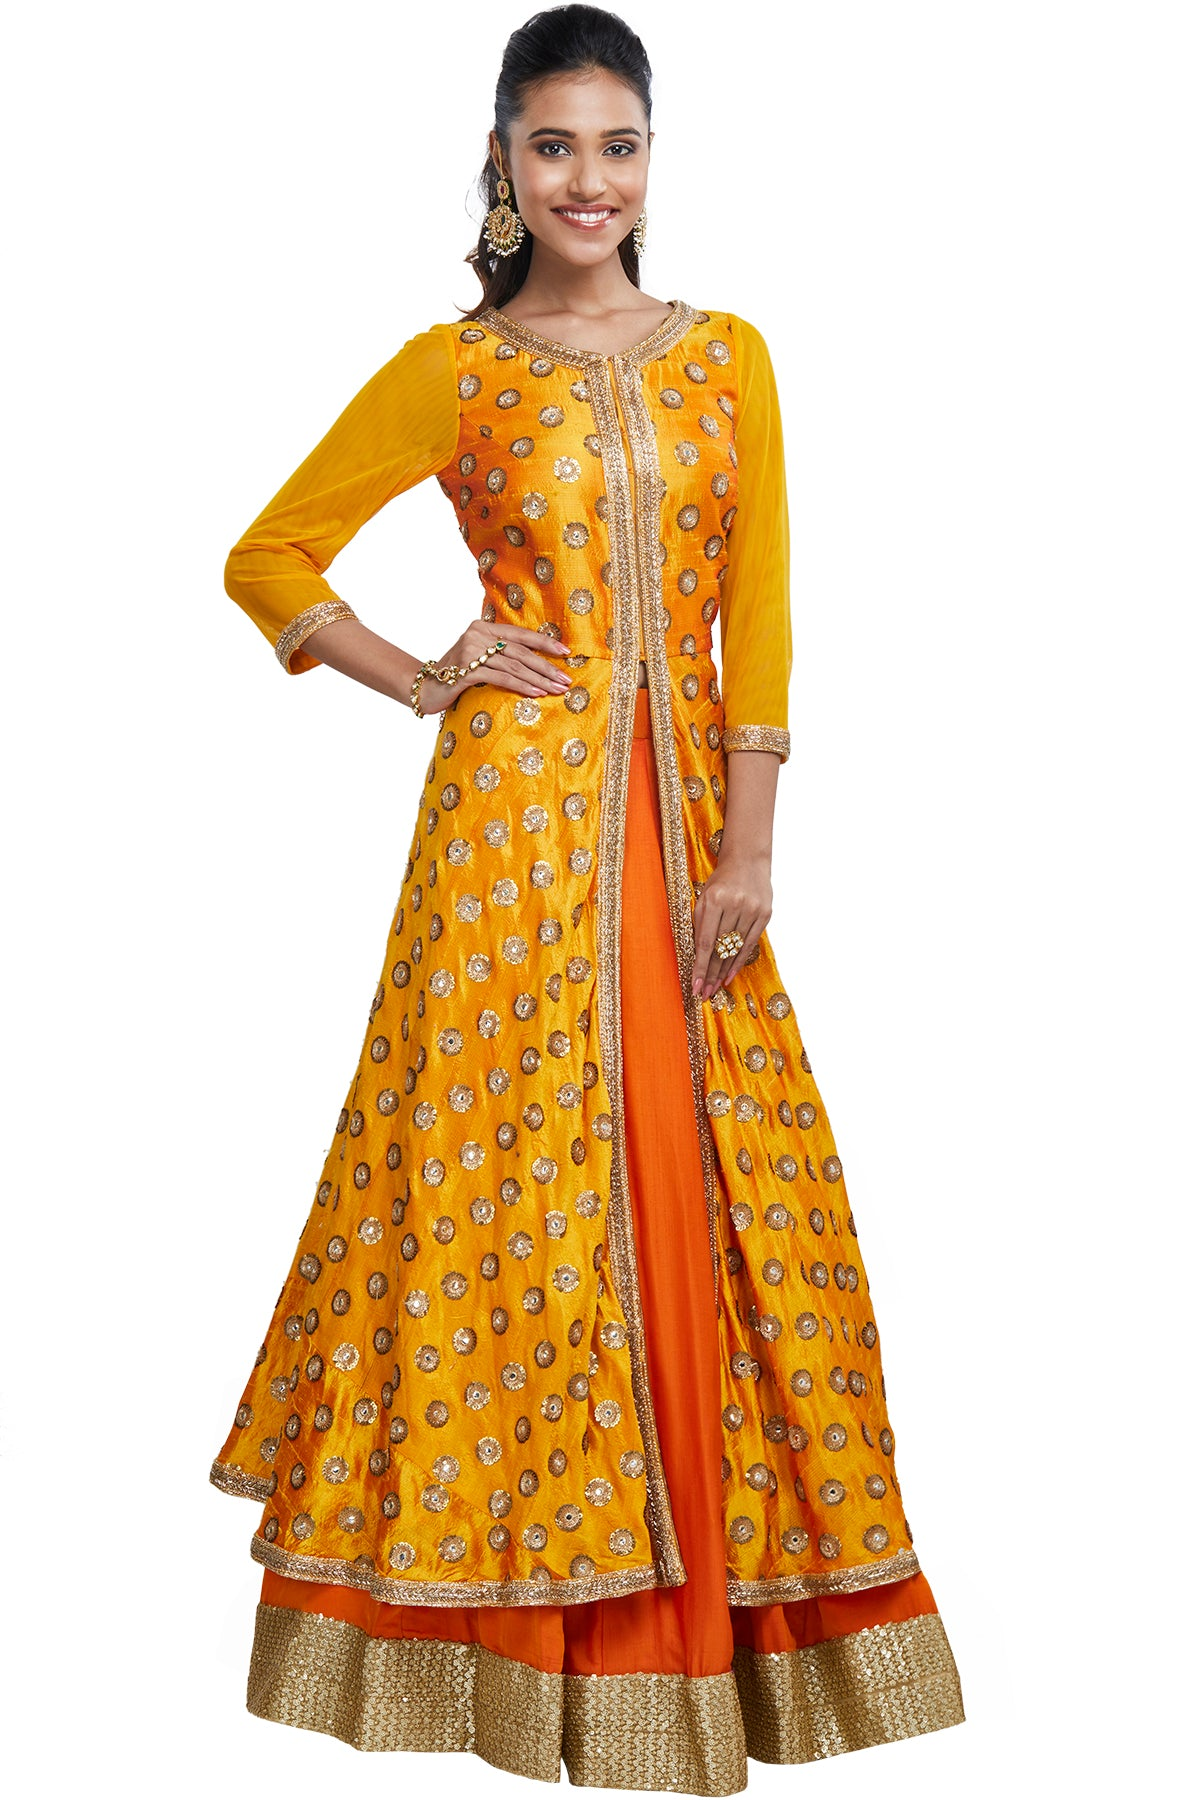 Look lush for life in this stunning combination of an embroidered saffron anarkali front-slit top over an orange skirt with a stark gold border.